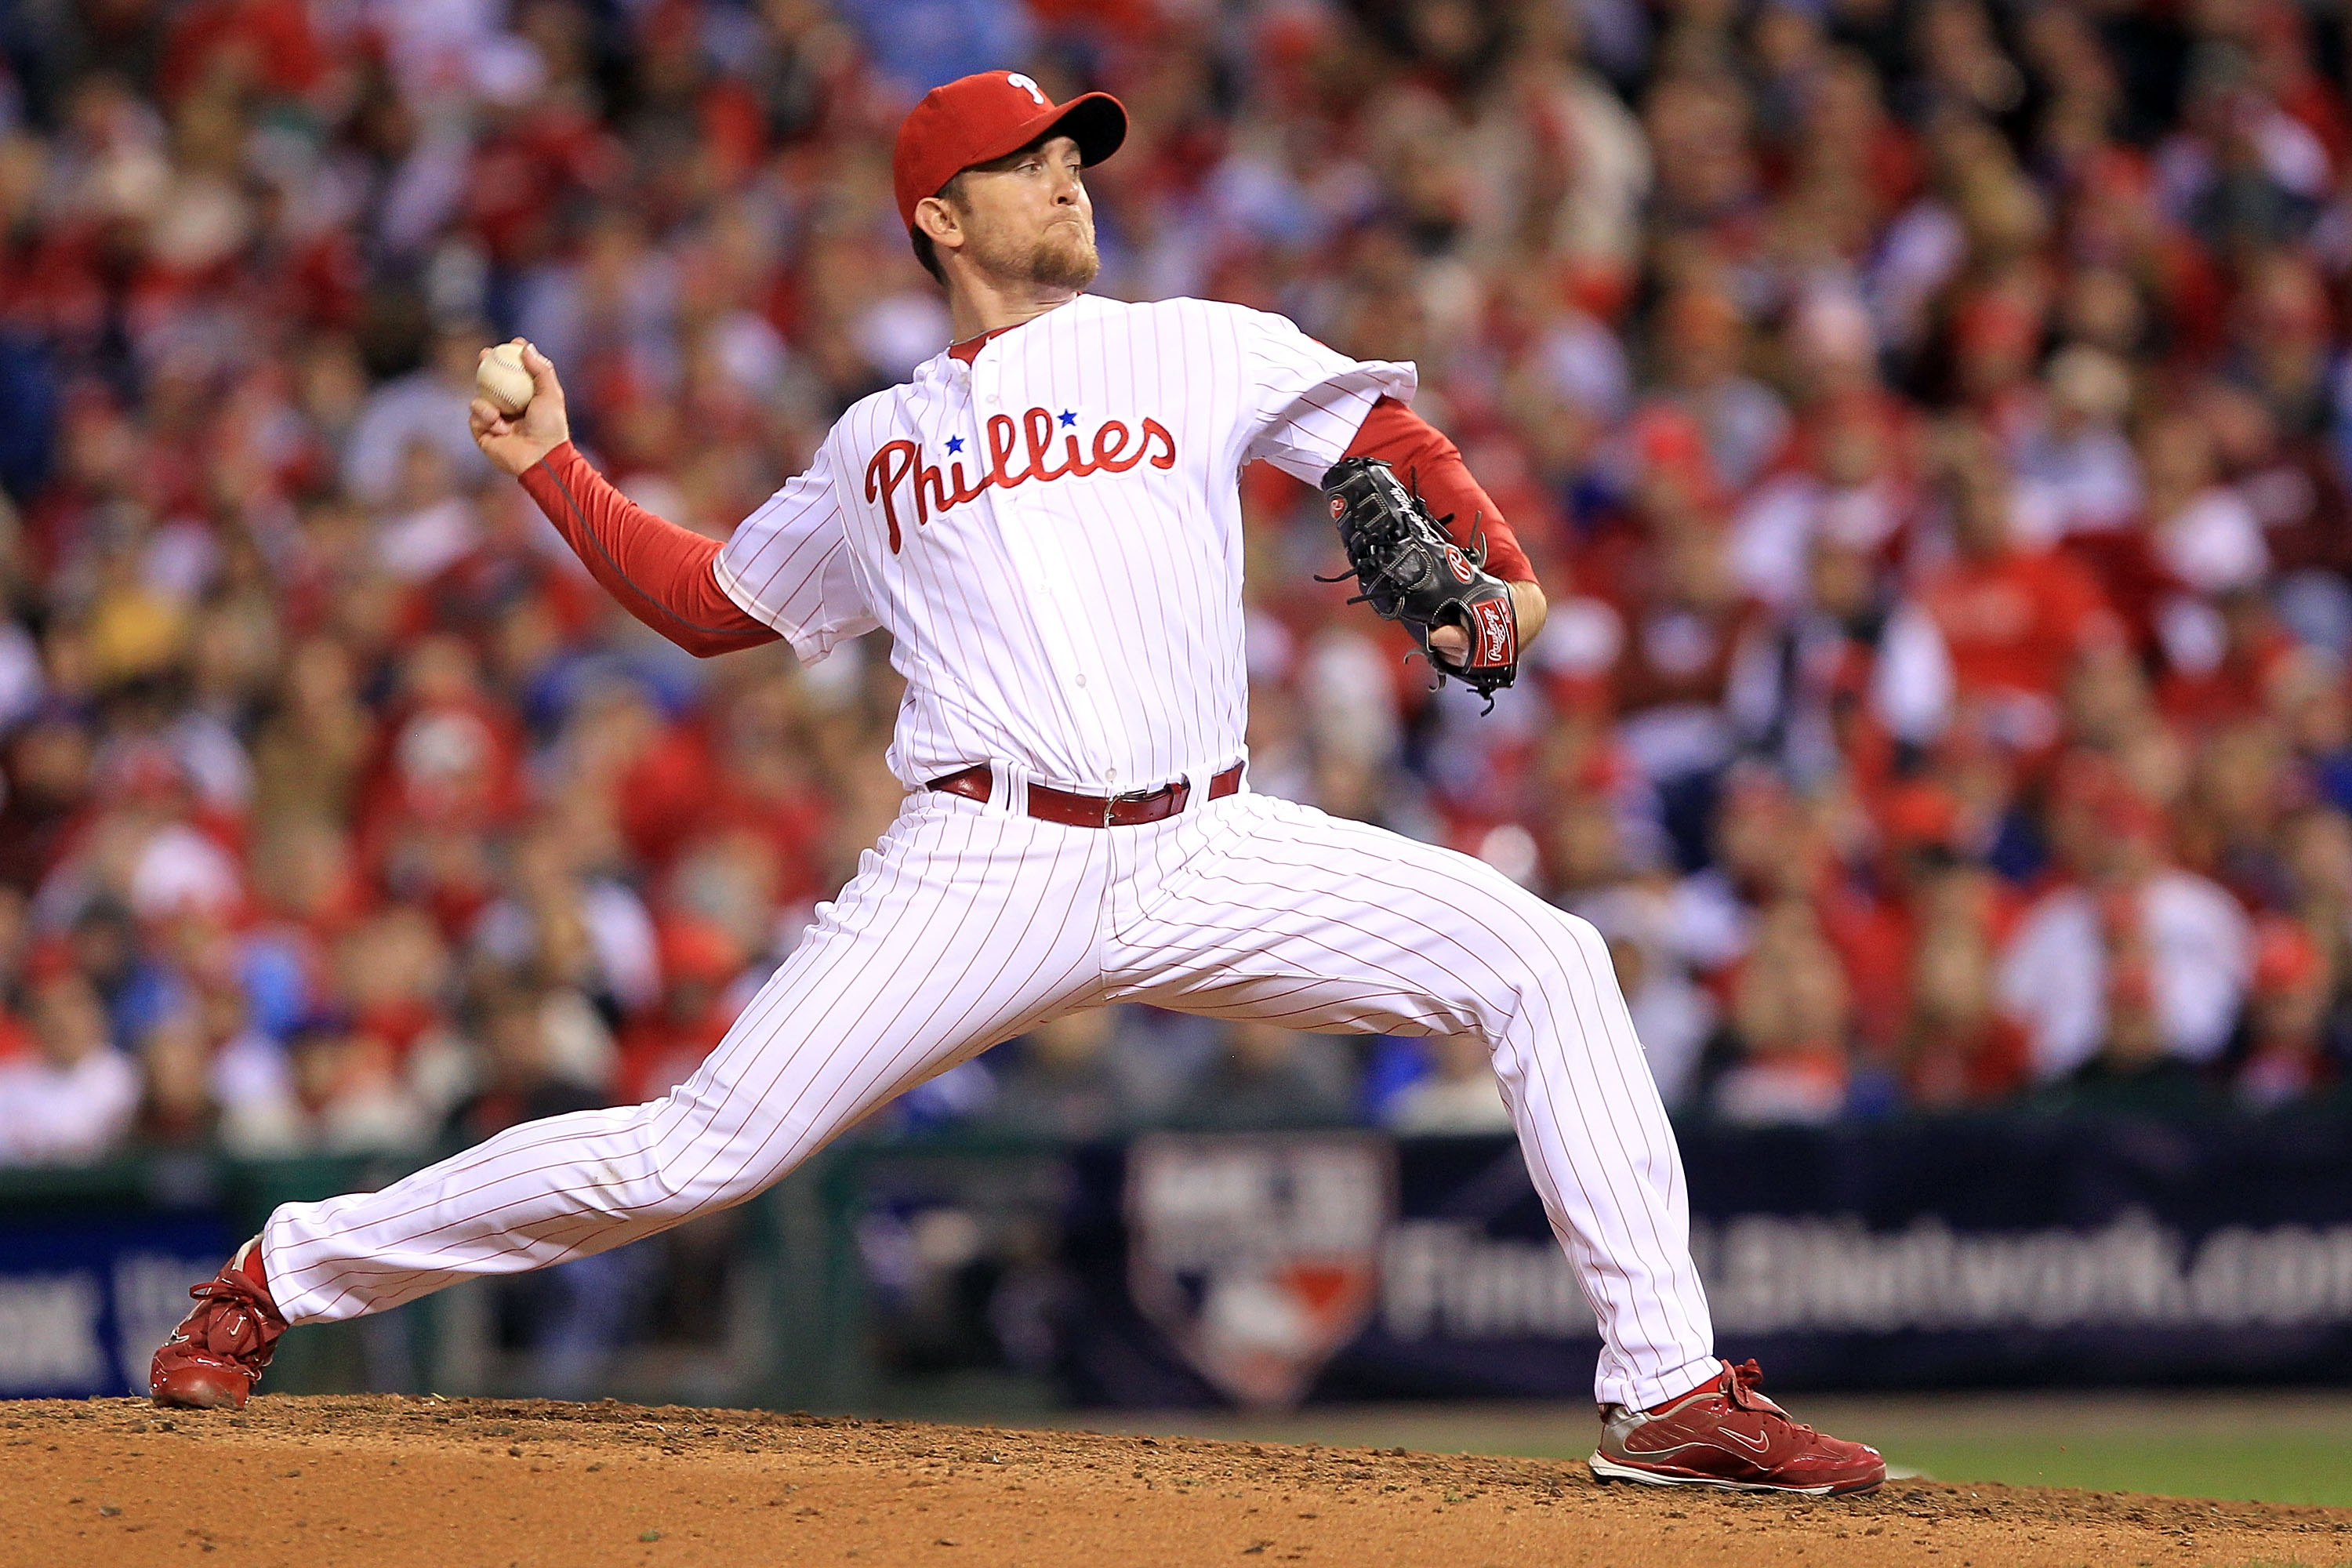 PHILADELPHIA - OCTOBER 16:  Brad Lidge #54 of the Philadelphia Phillies pitches in the ninth inning against the San Francisco Giants in Game One of the NLCS during the 2010 MLB Playoffs at Citizens Bank Park on October 16, 2010 in Philadelphia, Pennsylvan